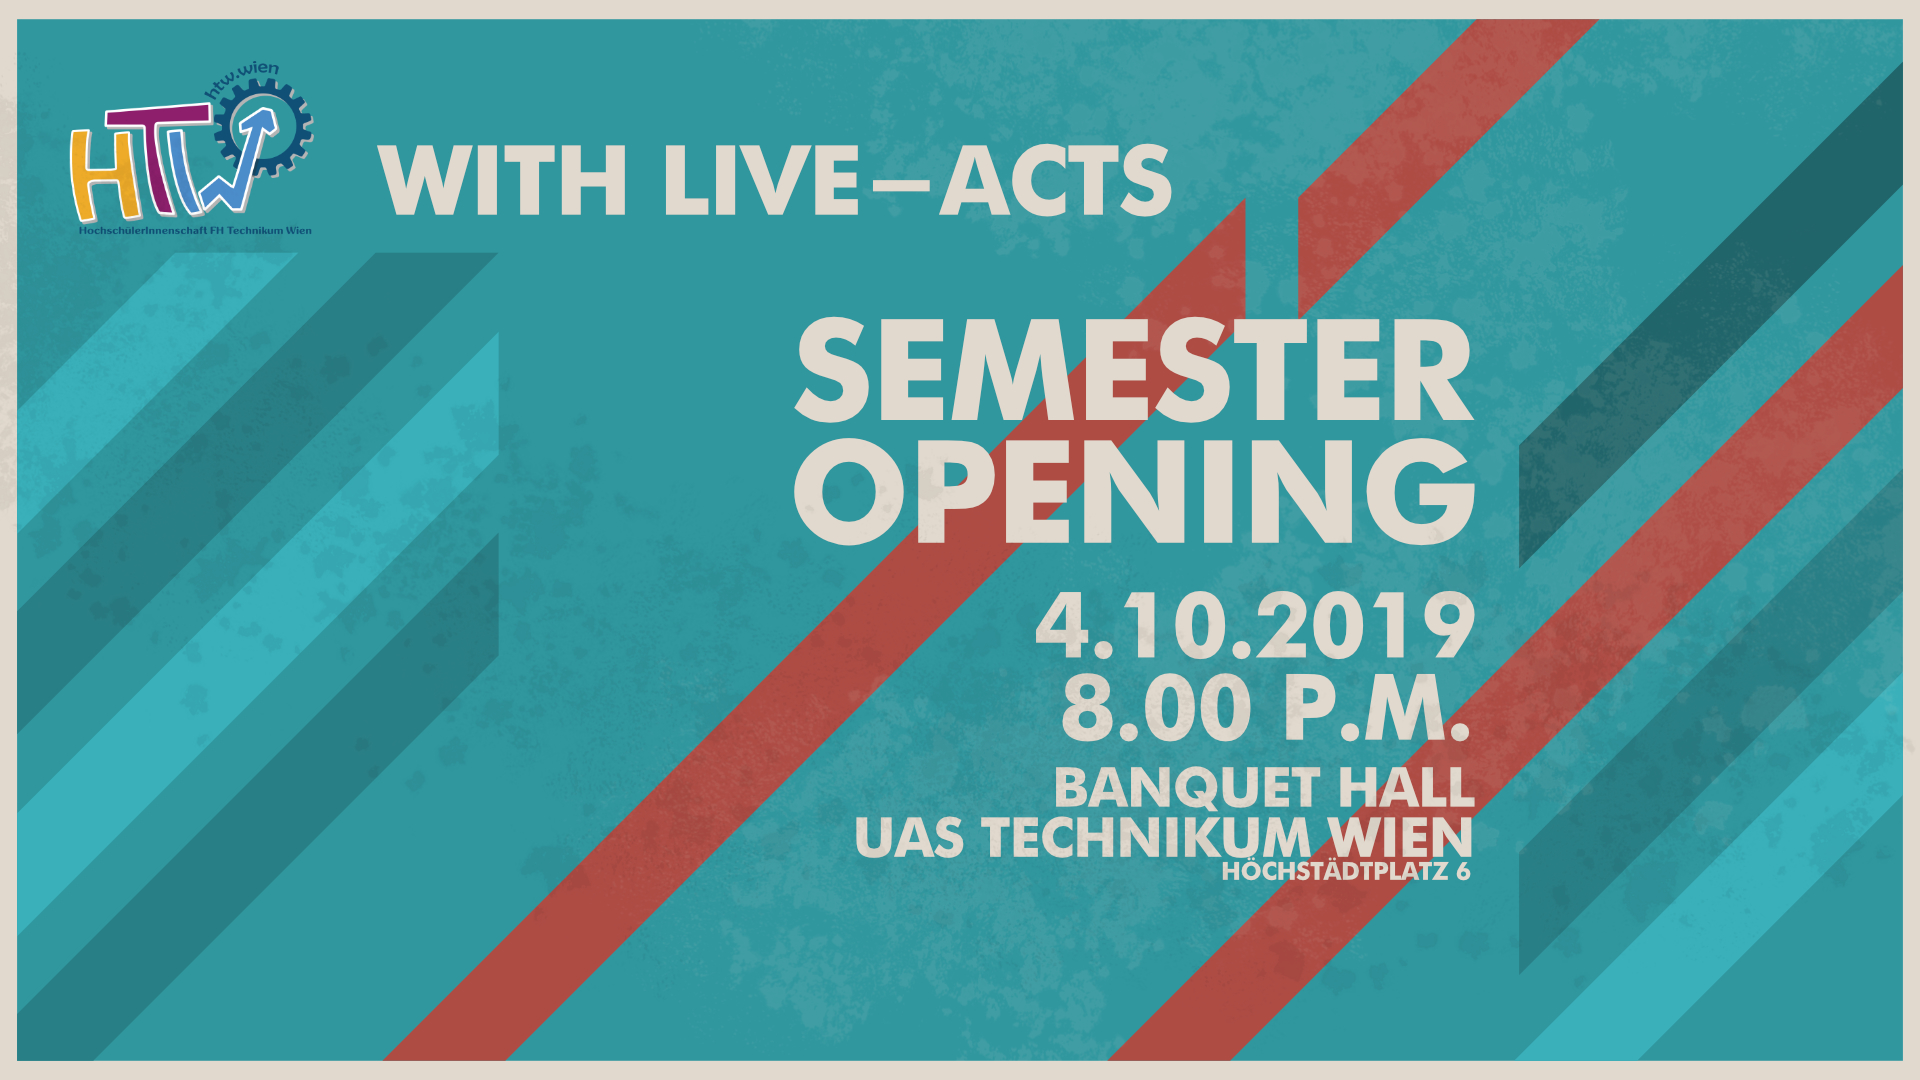 Semesteropening with live-acts on the 4th of October 2019 starting at 8 p.m. in the banquet hall of the UAS Technikum Wien